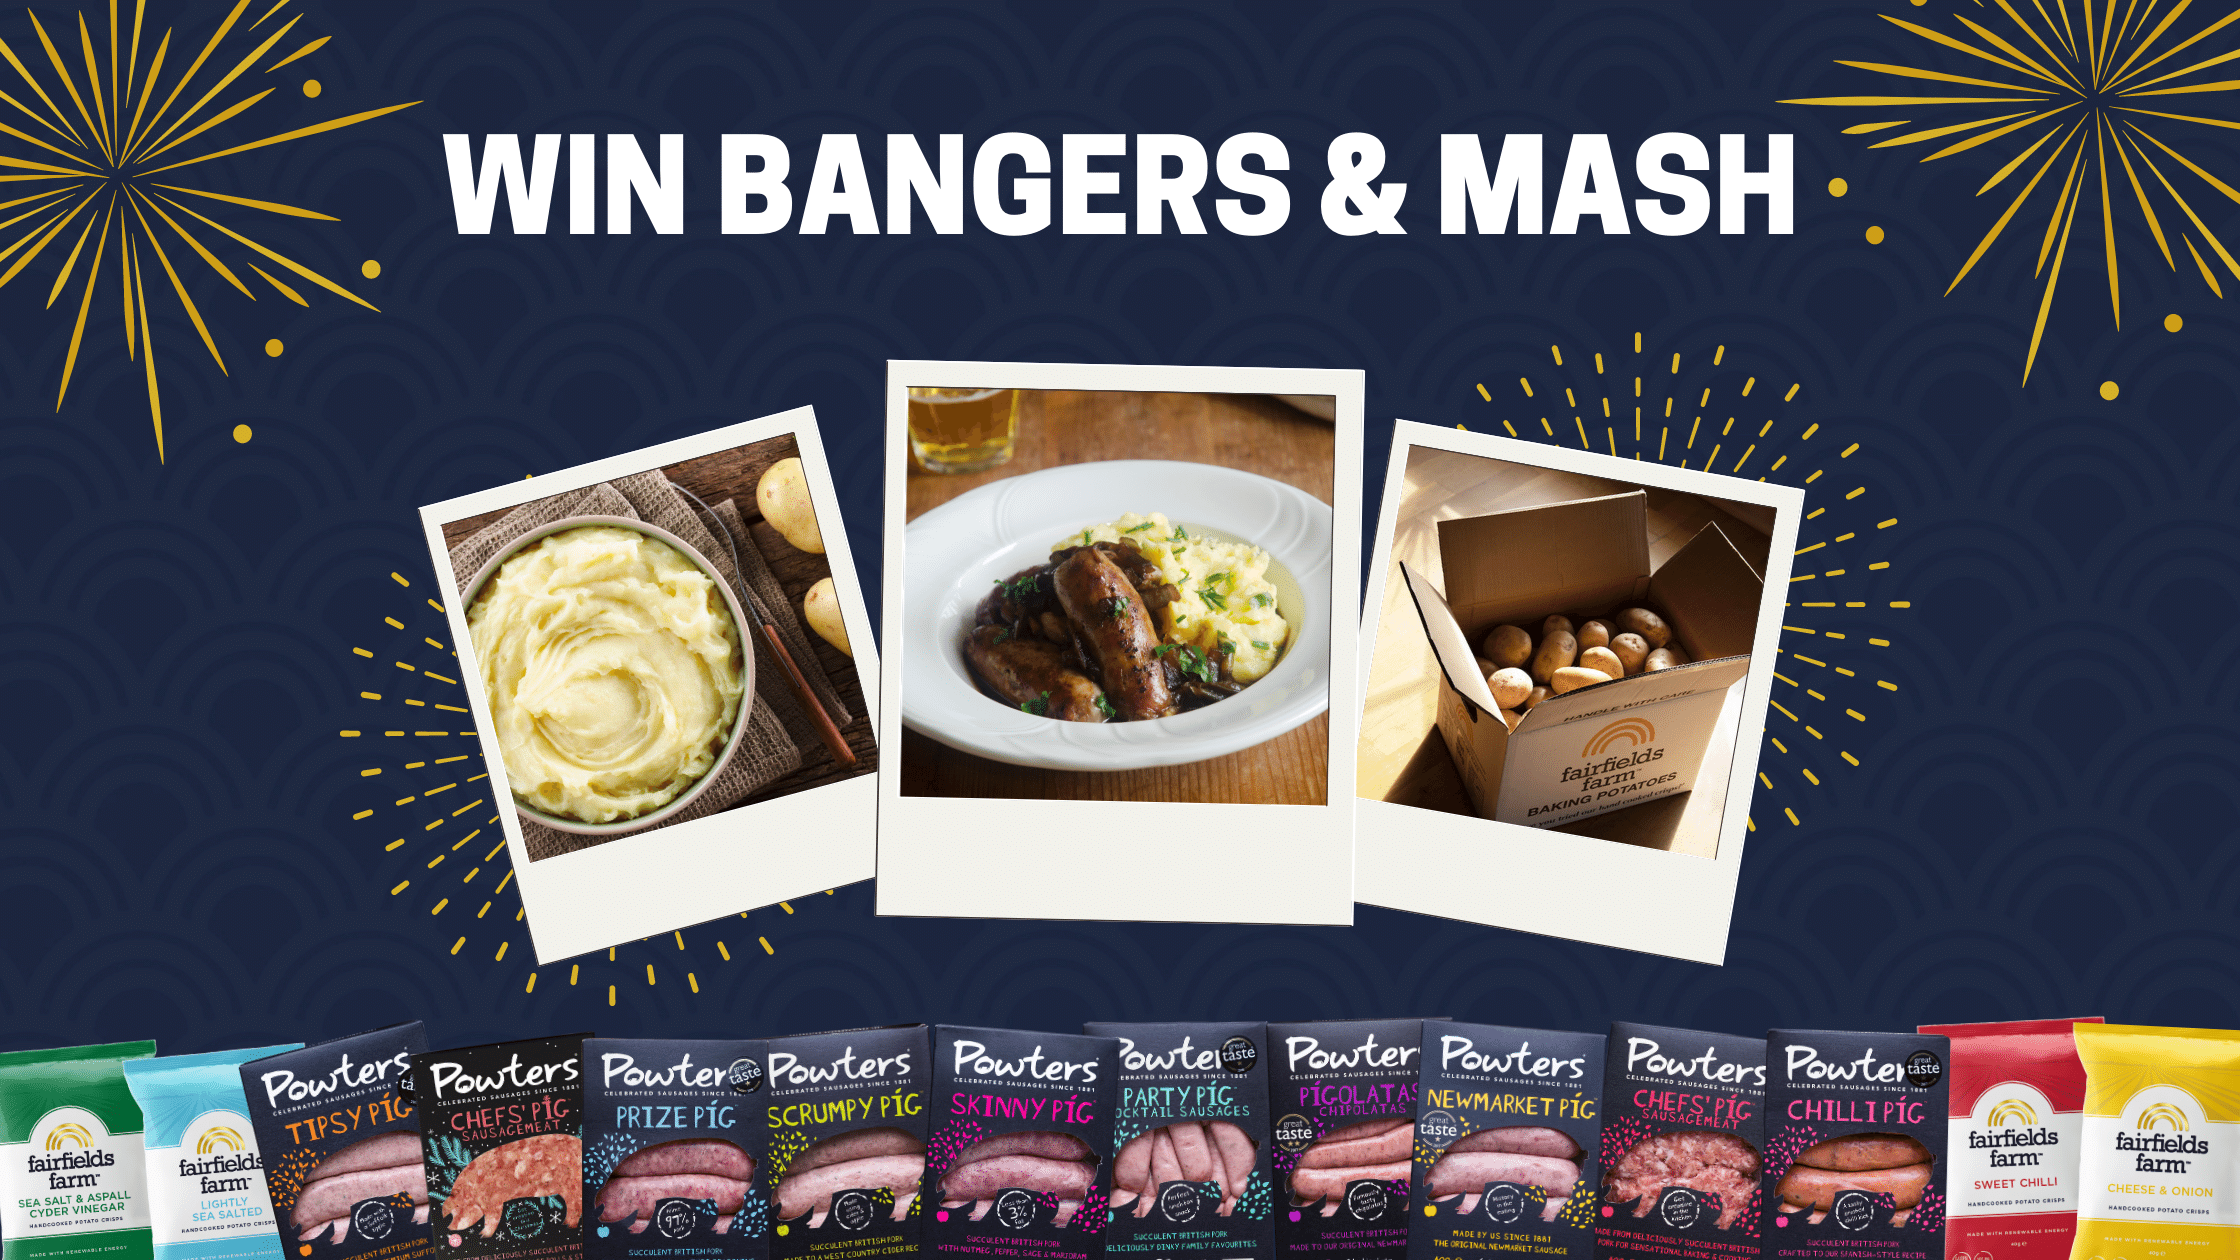 WIN Bangers & Mash with Powters & Fairfields